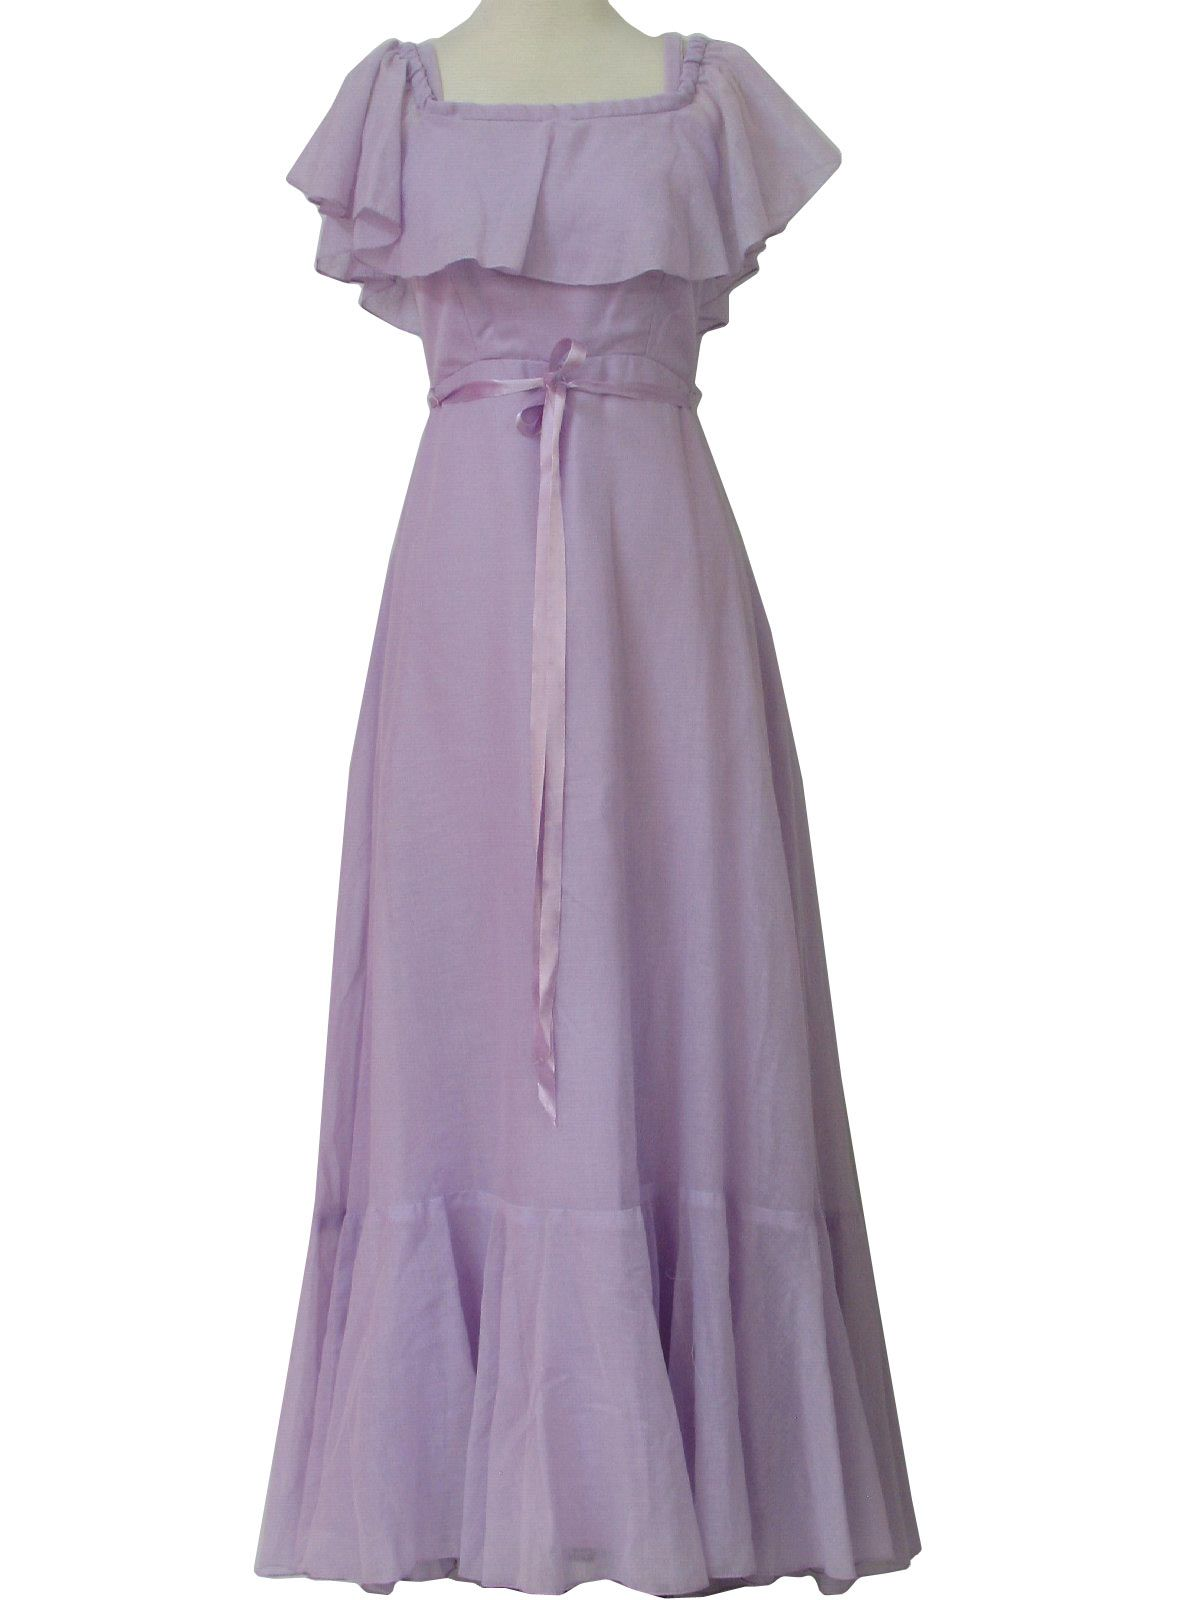 1970's JC Penney Womens/Girls Prom/Cocktail Maxi Dress